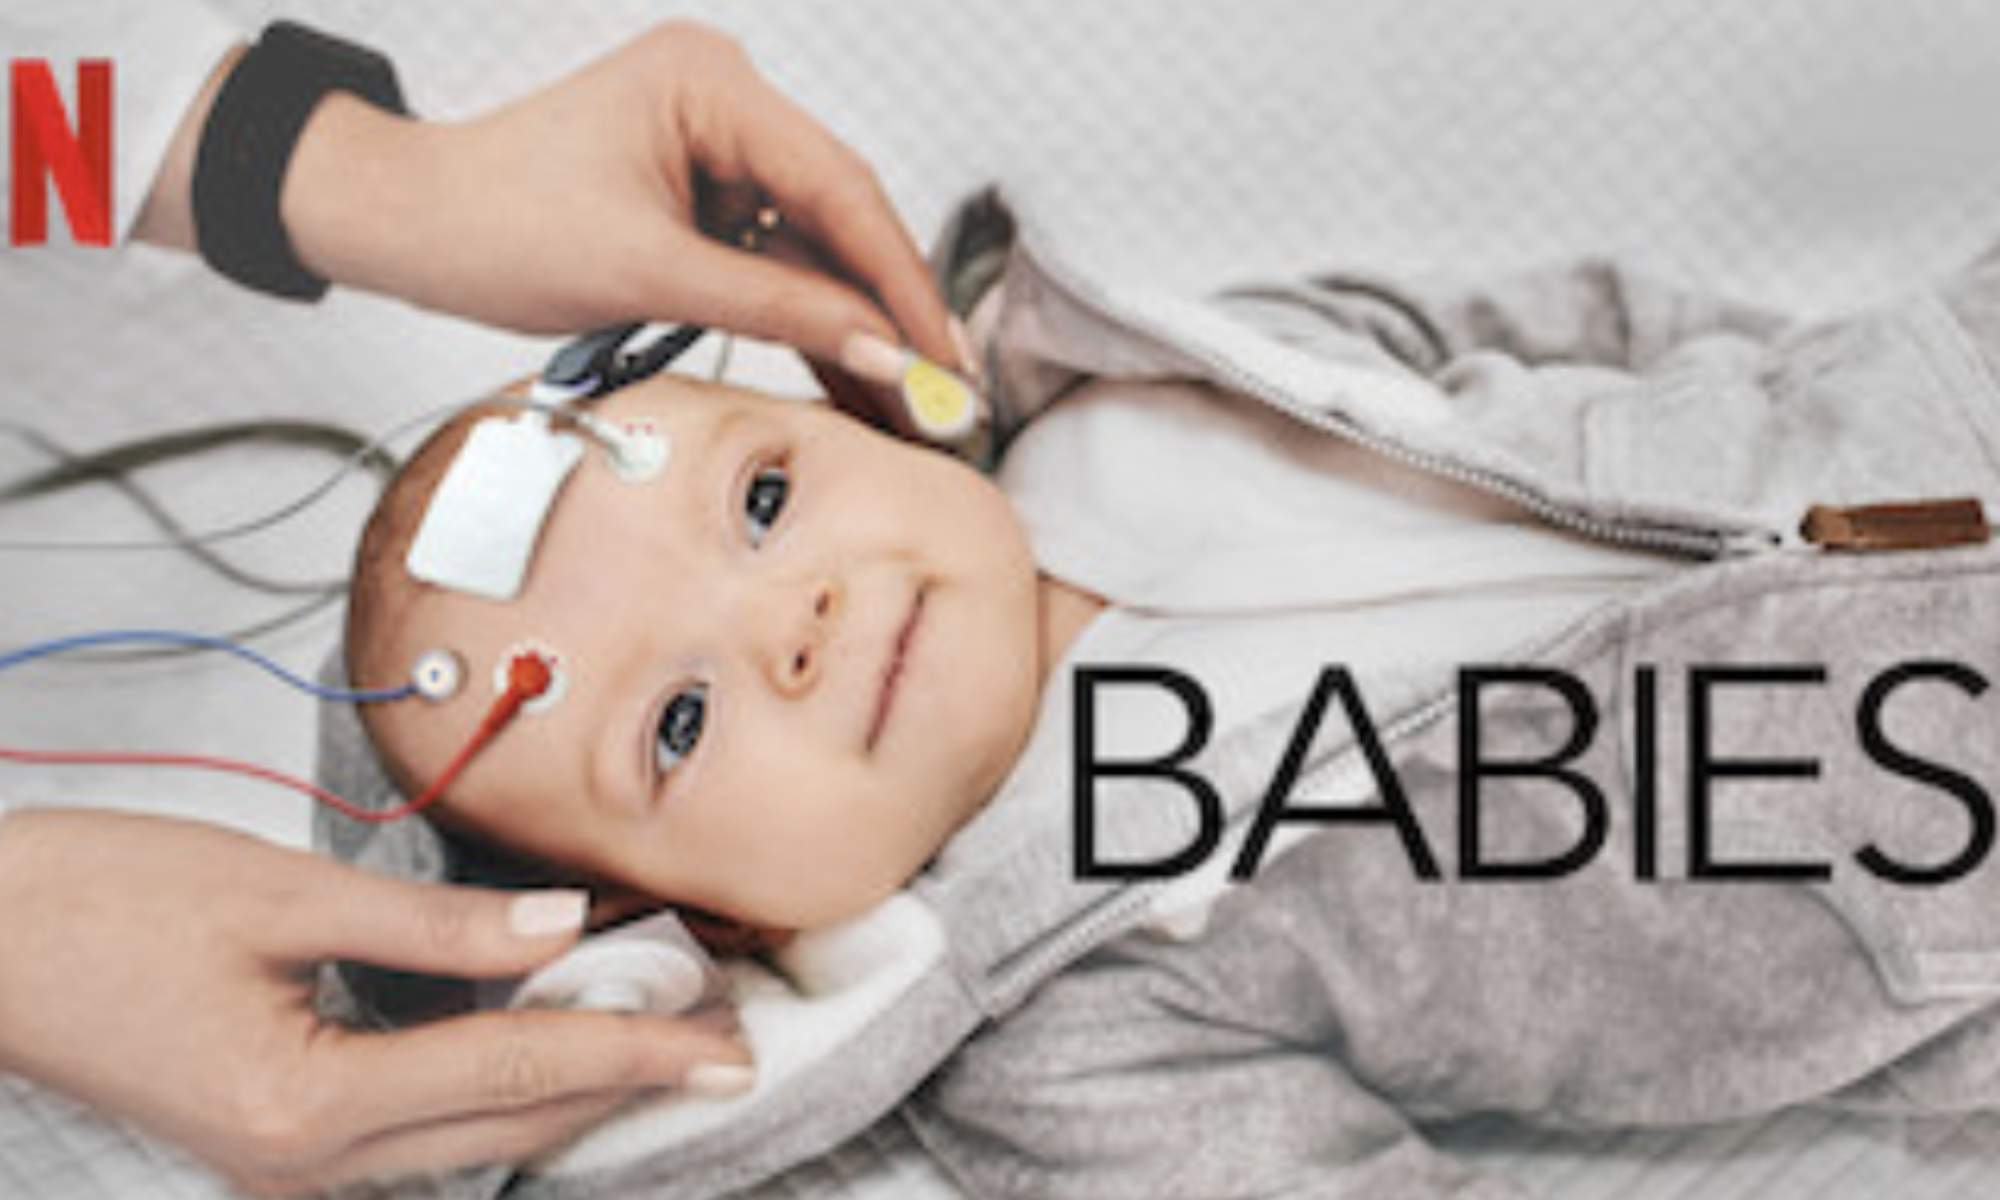 Netflix's Babies: A documentary review